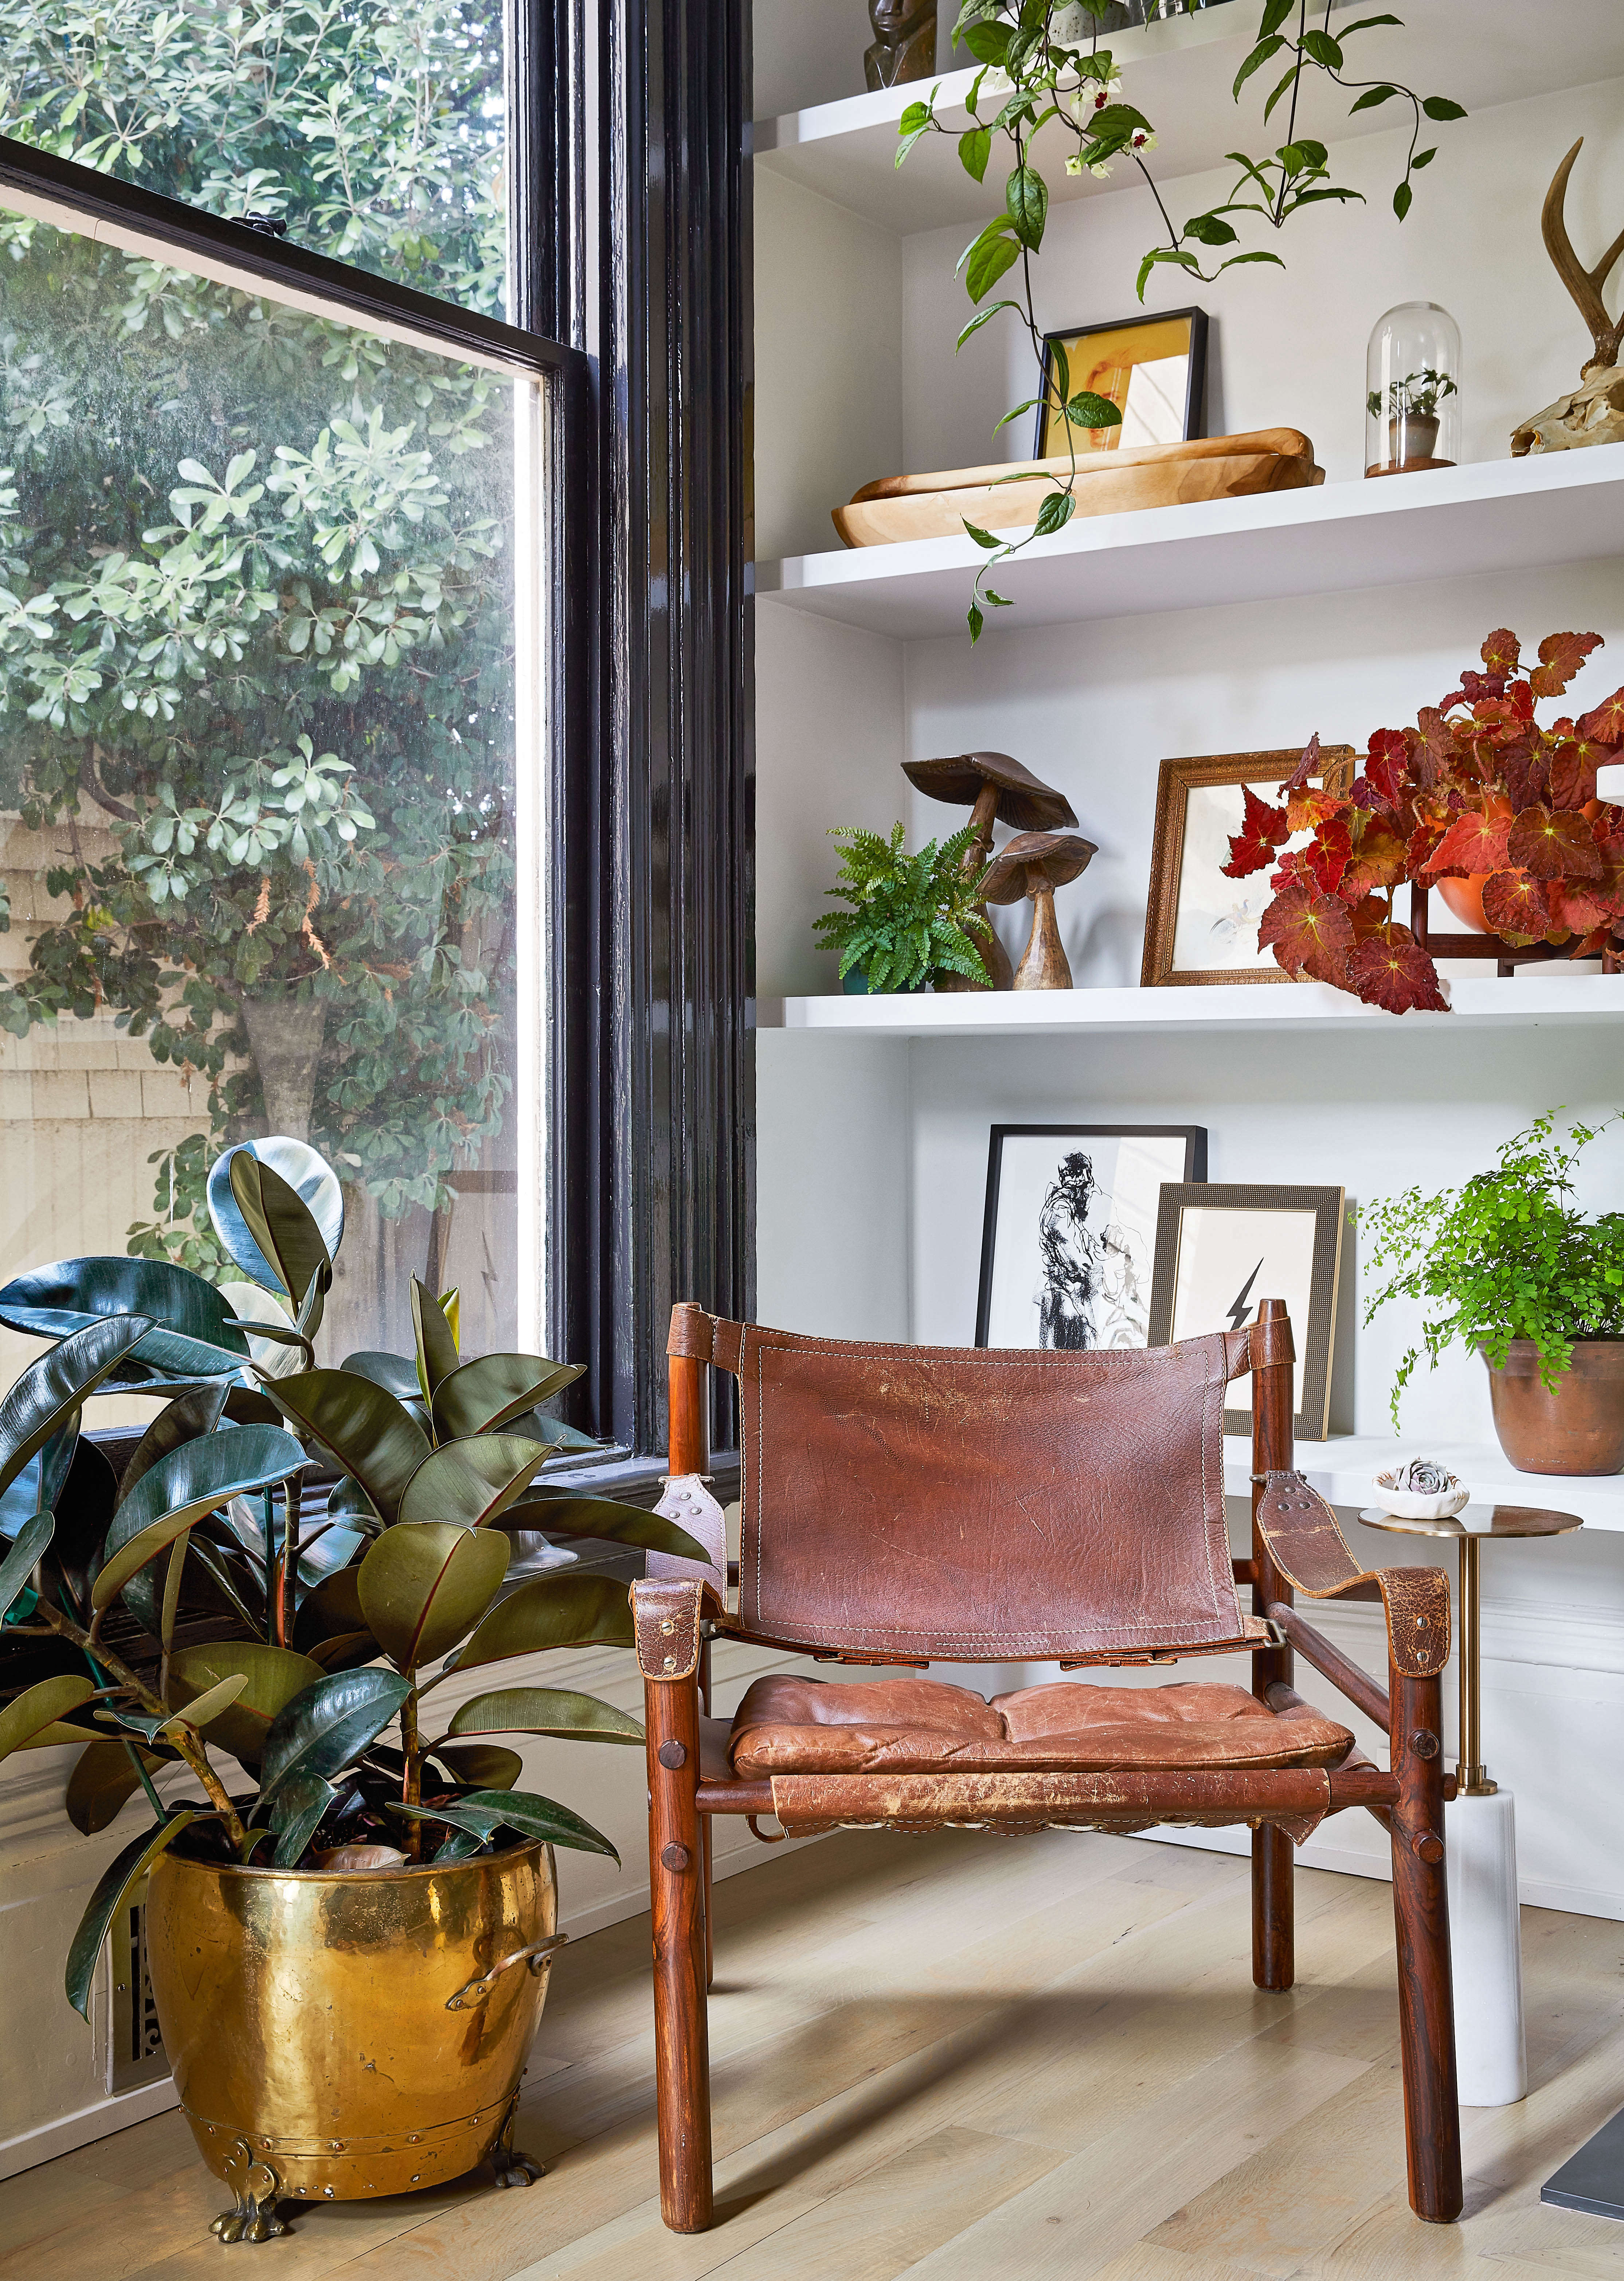 Decorating With Plants 6 Ideas To Steal From A New Book By Baylor Chapman Gardenista